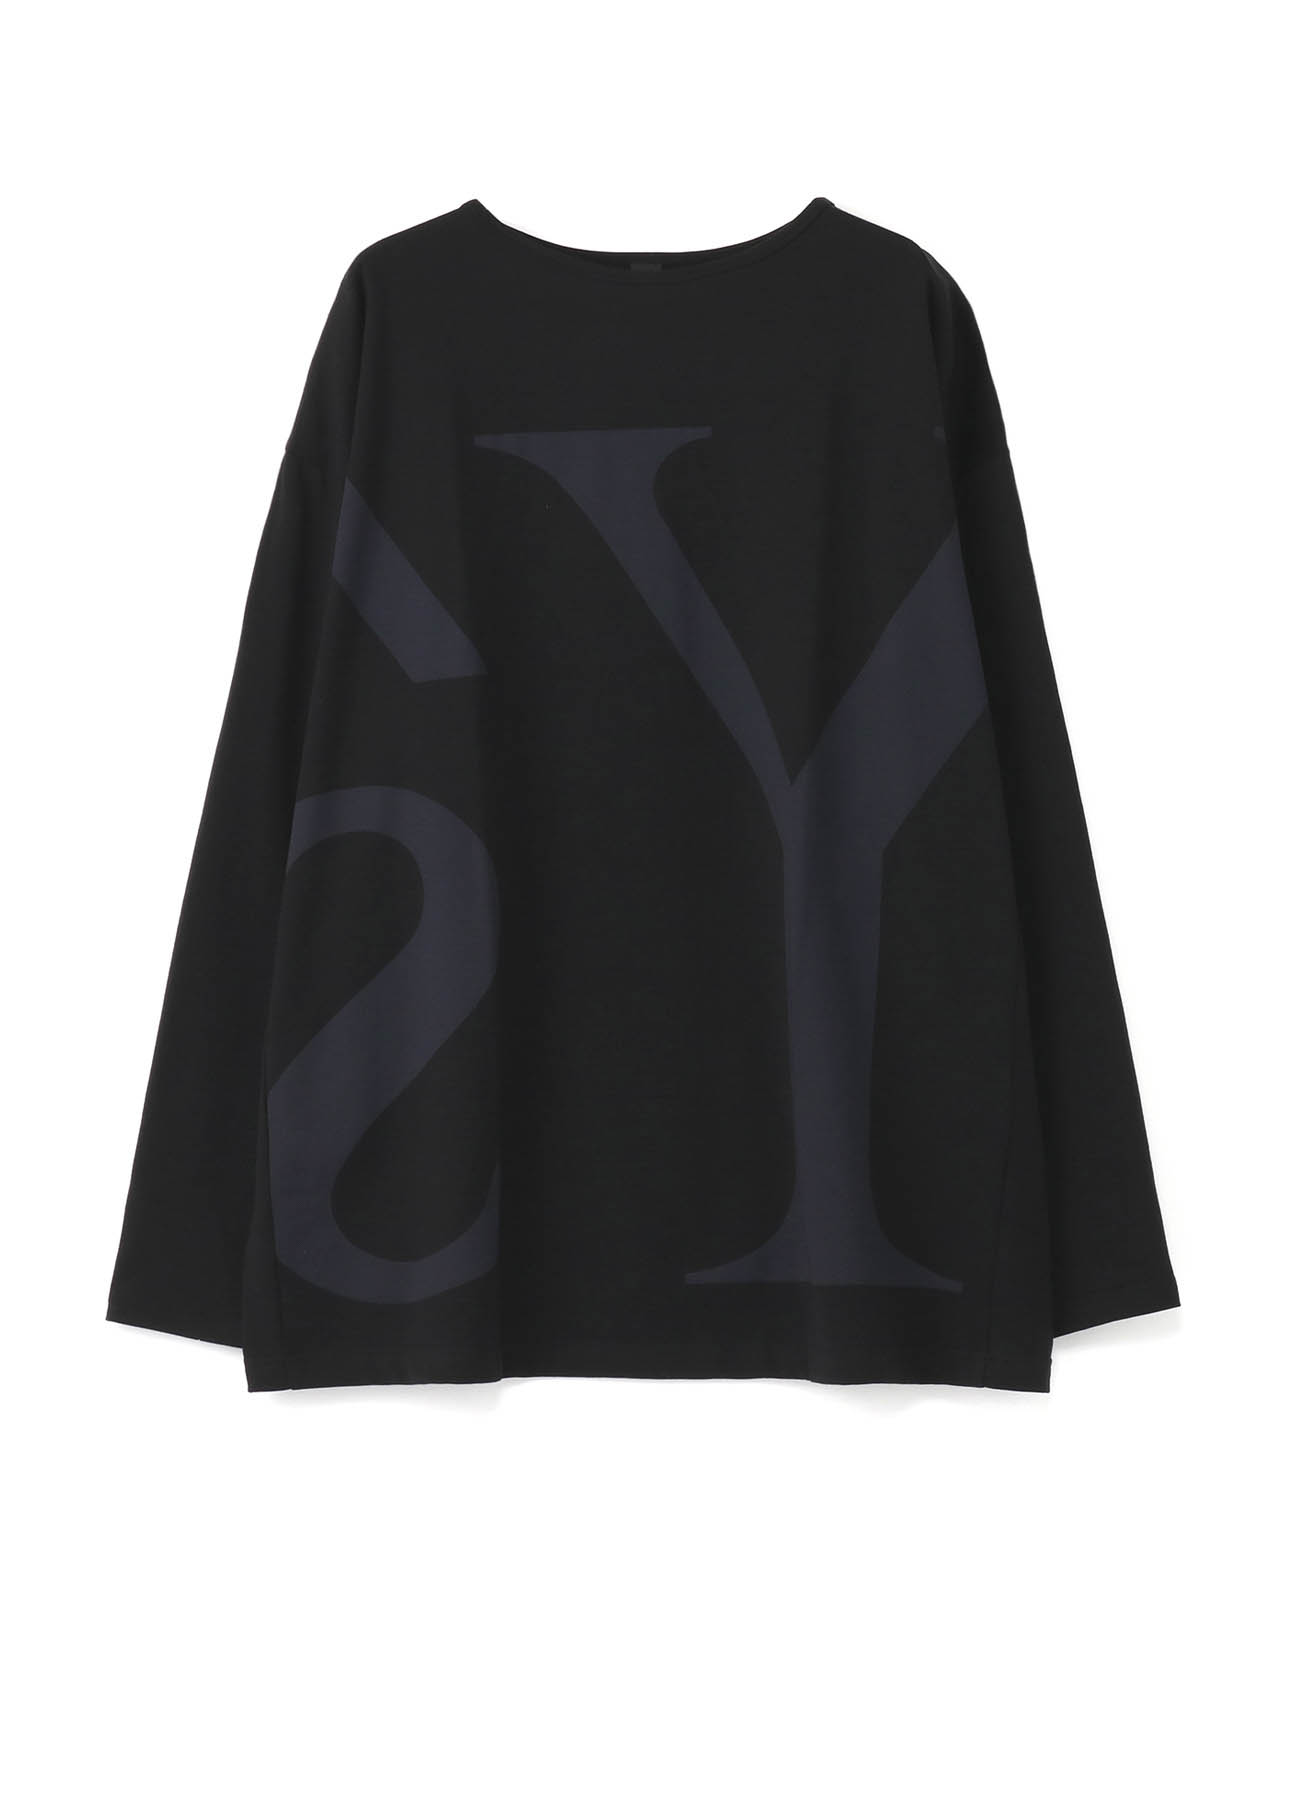 Y's Print Fleece Fabric Cut & Sewn Long Sleeve